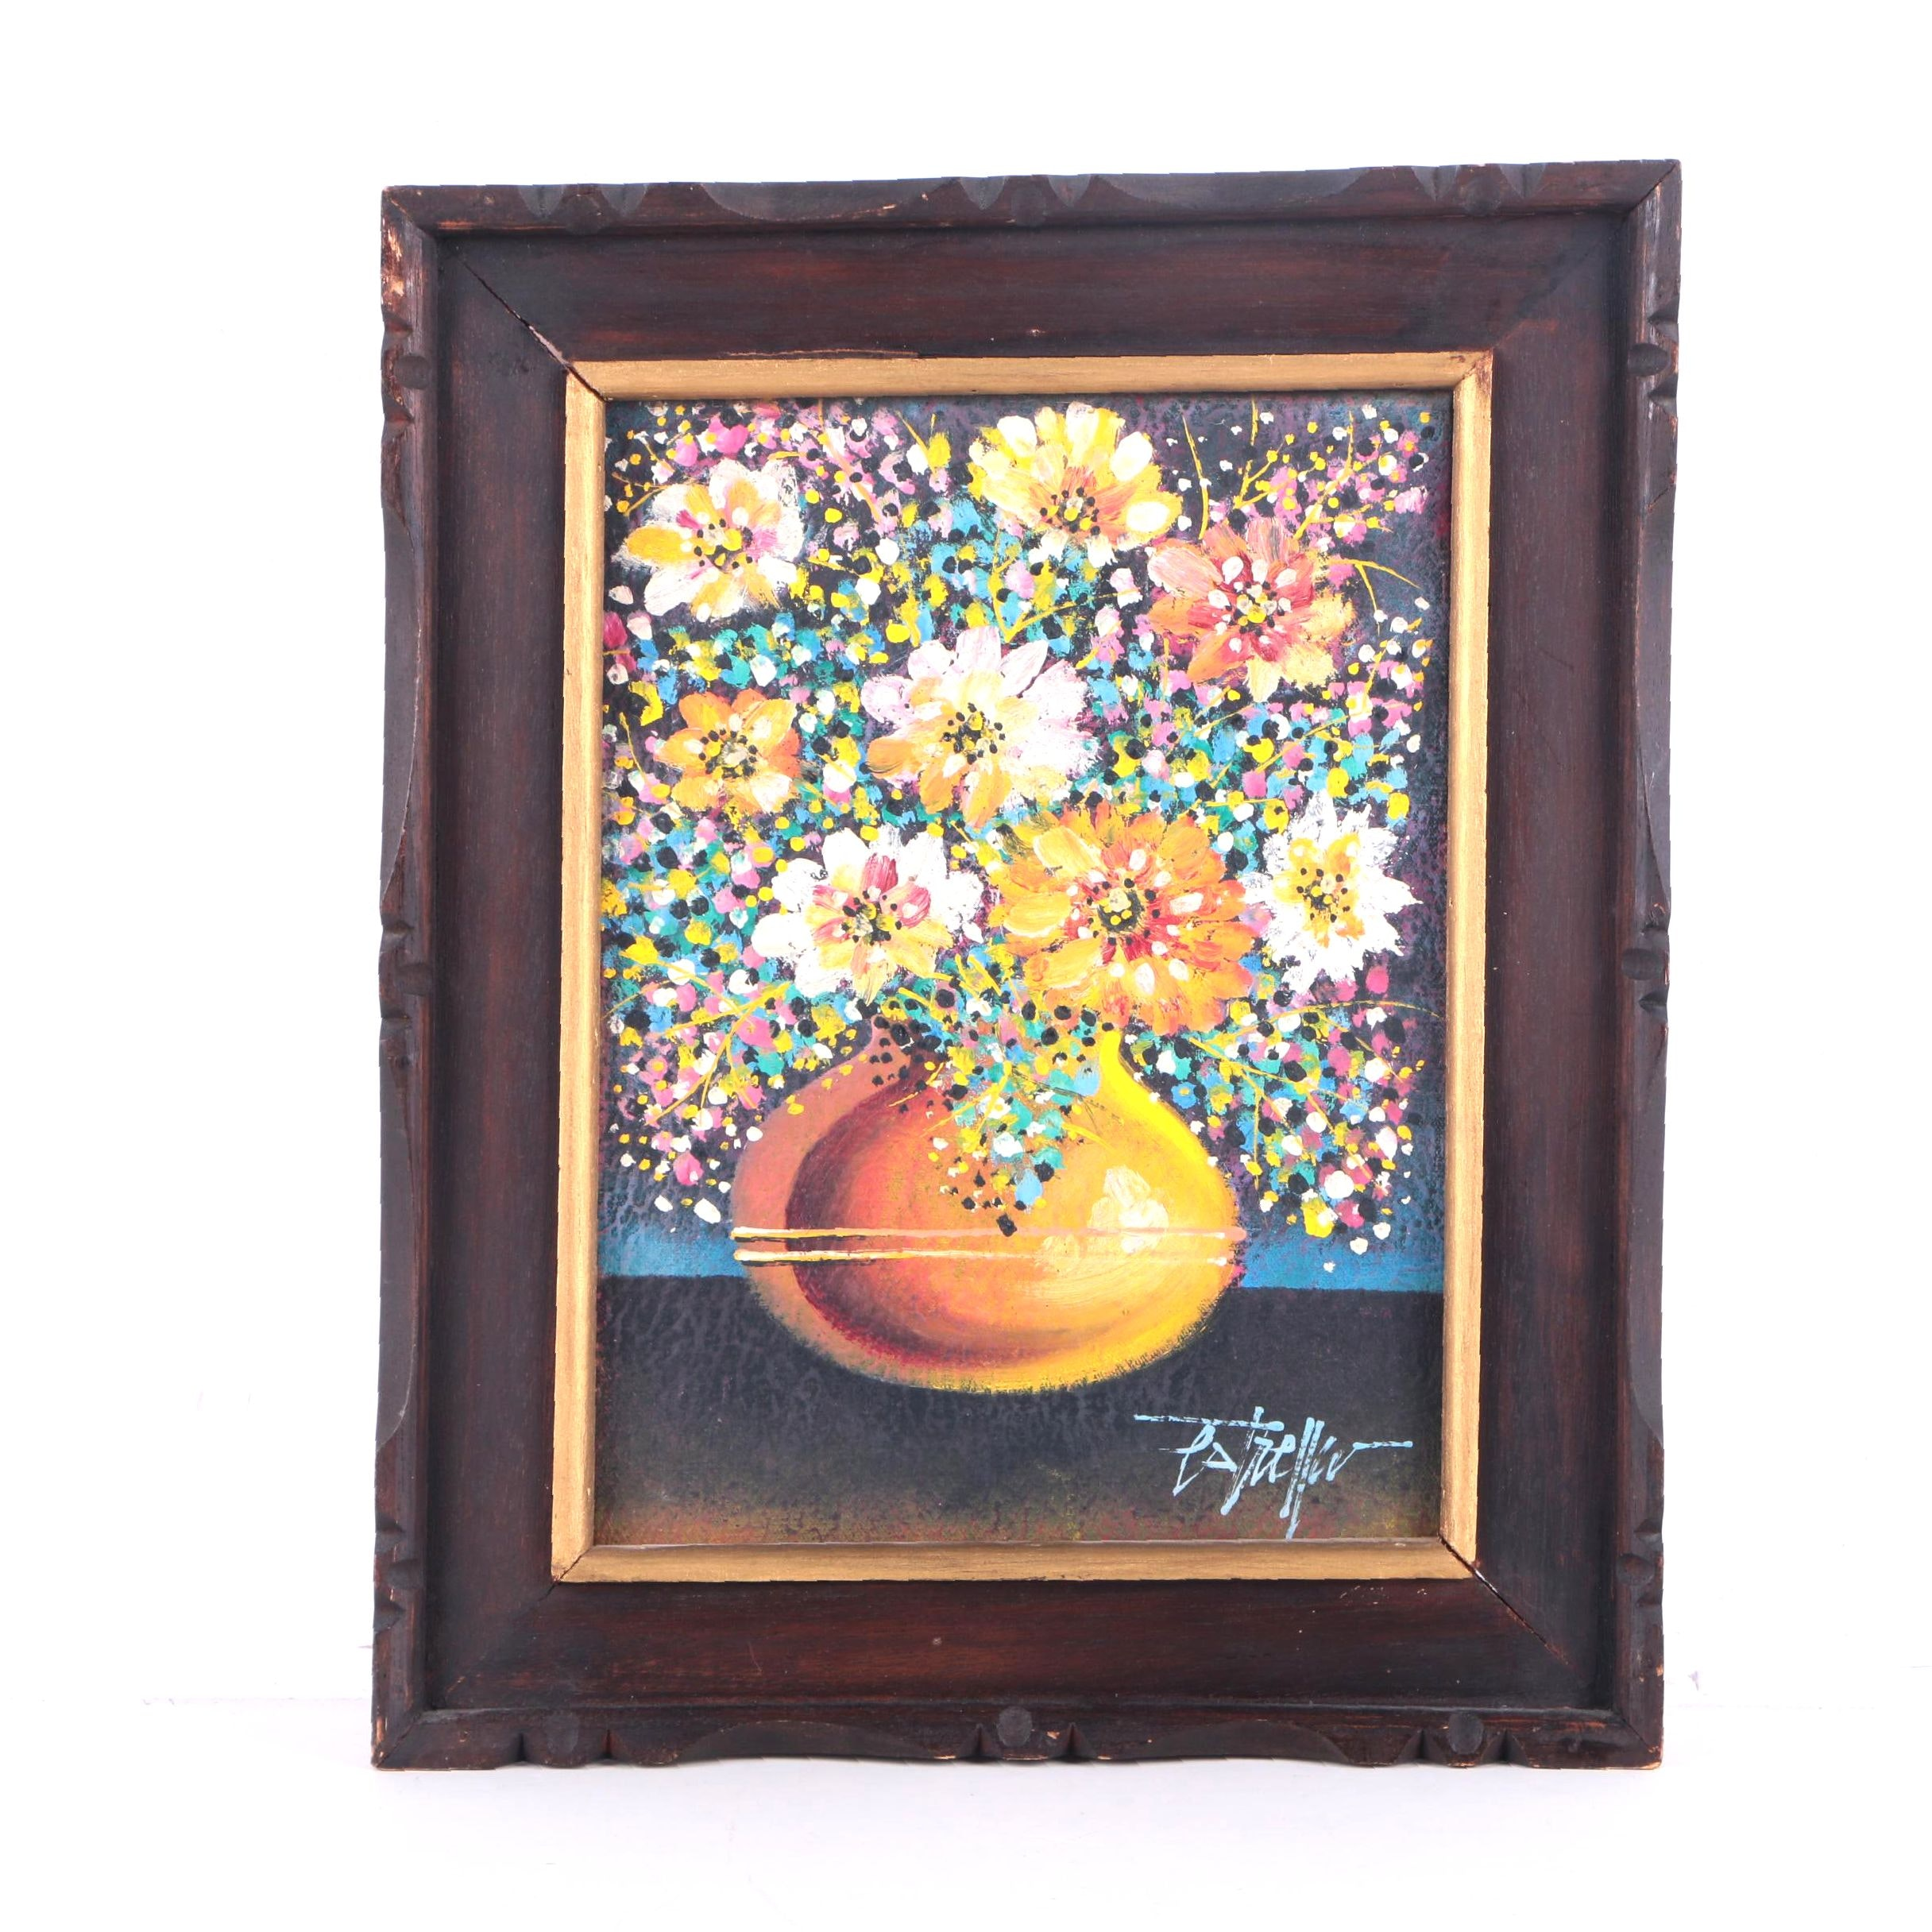 Estrella Oil Painting on Canvas of Still Life with Flowers in Yellow Vase